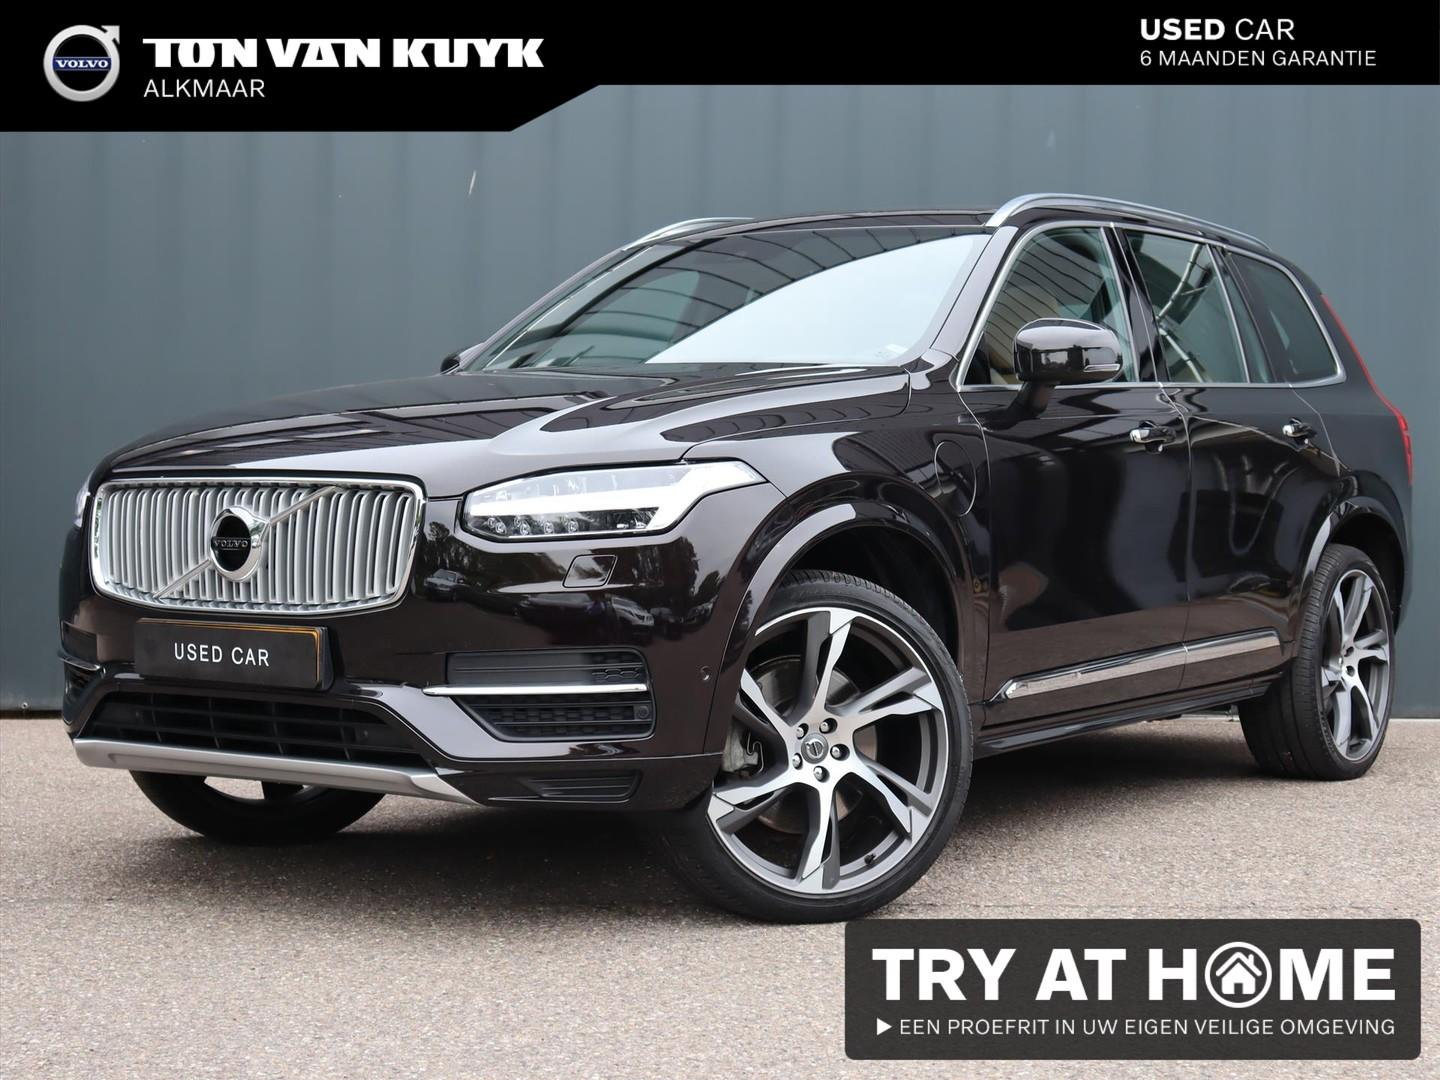 Volvo Xc90 T8 twin engine 400pk inscription / luchtvering / bowers & wilkins / stoelkoeling / 22'' inch